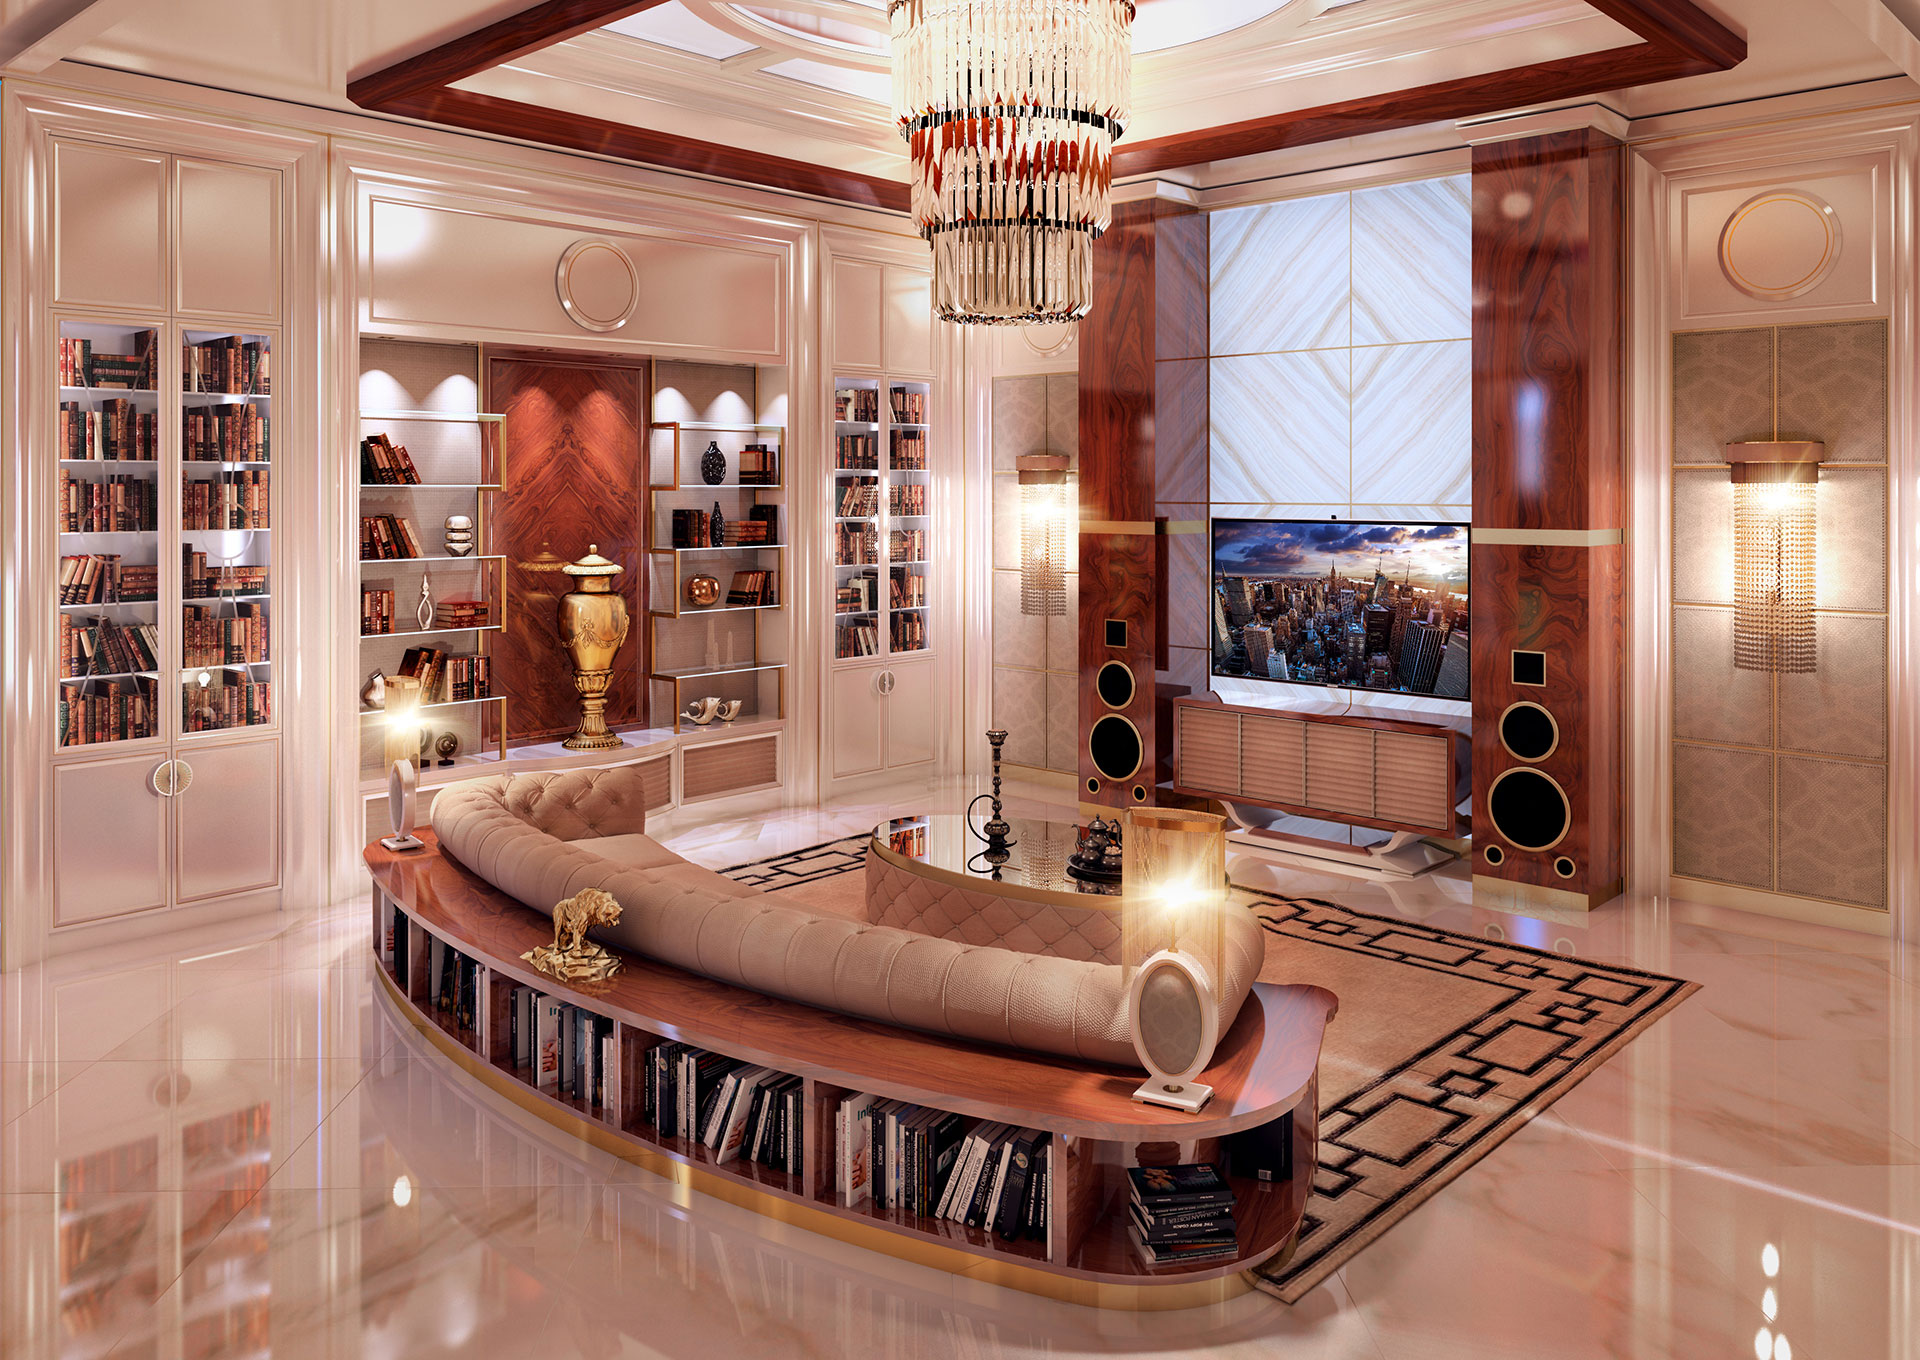 The spacious TV room features a comfortable sofa that rests on the bookshelf base and bespoke furniture